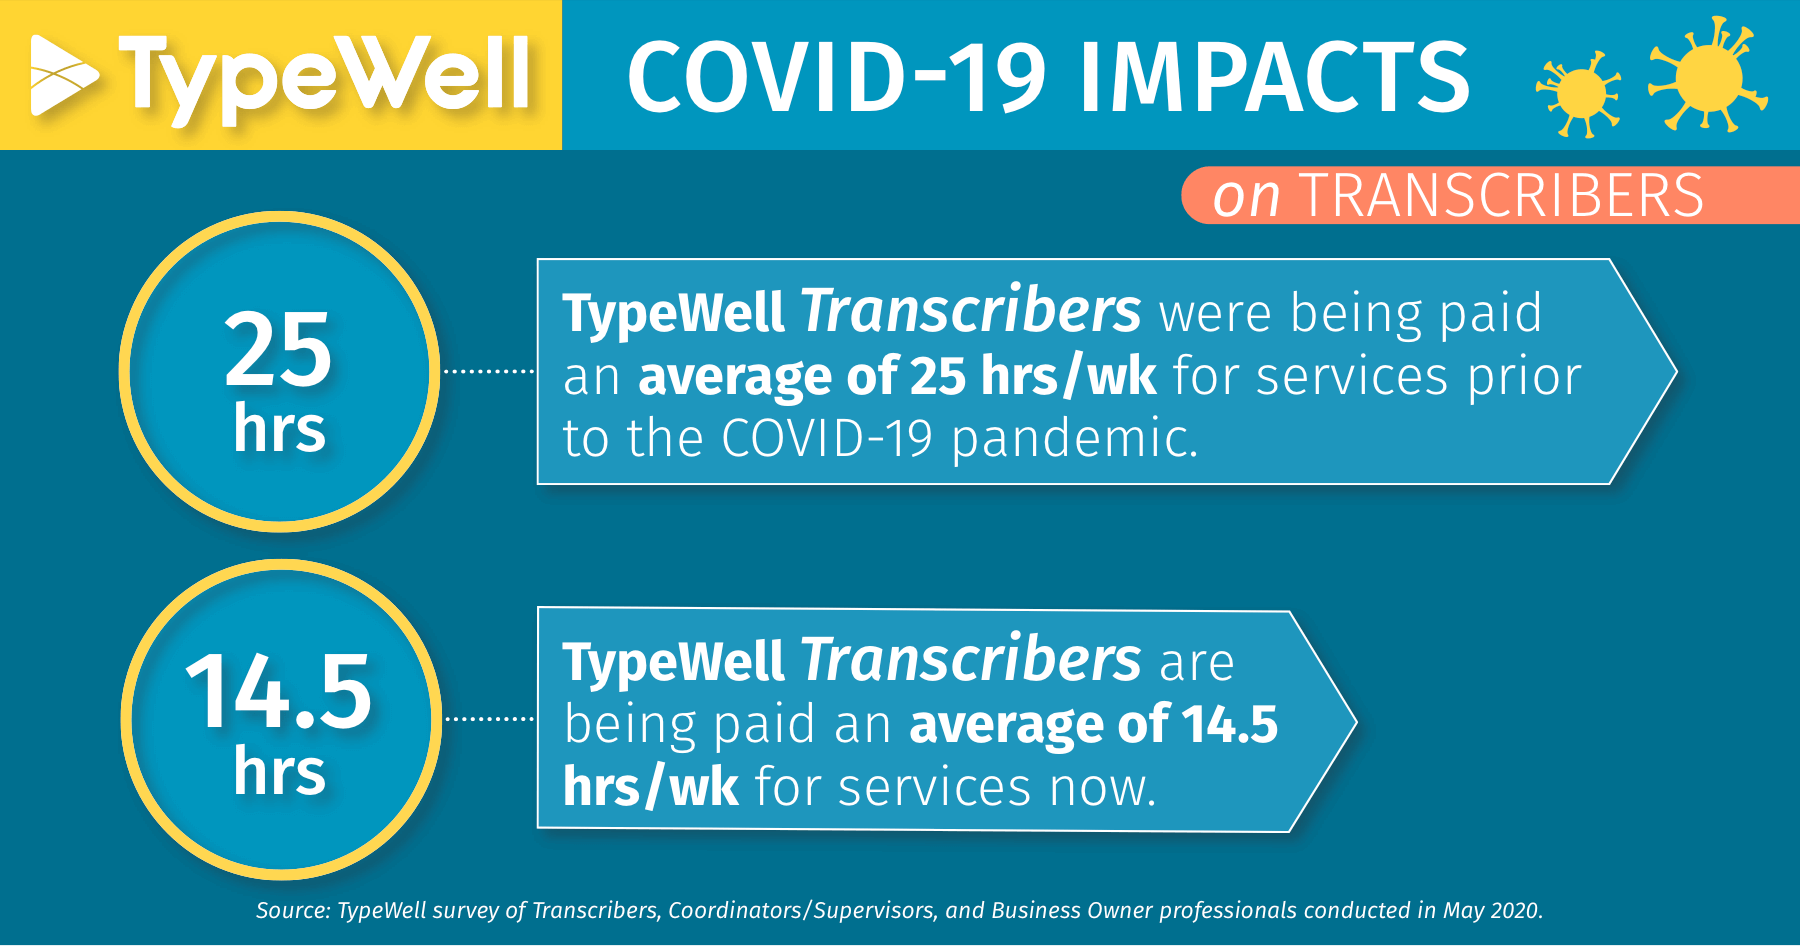 COVID-19 impacts on transcribers: average 14.5 hours/week for TypeWell services, down from 25 hours/week before the pandemic.